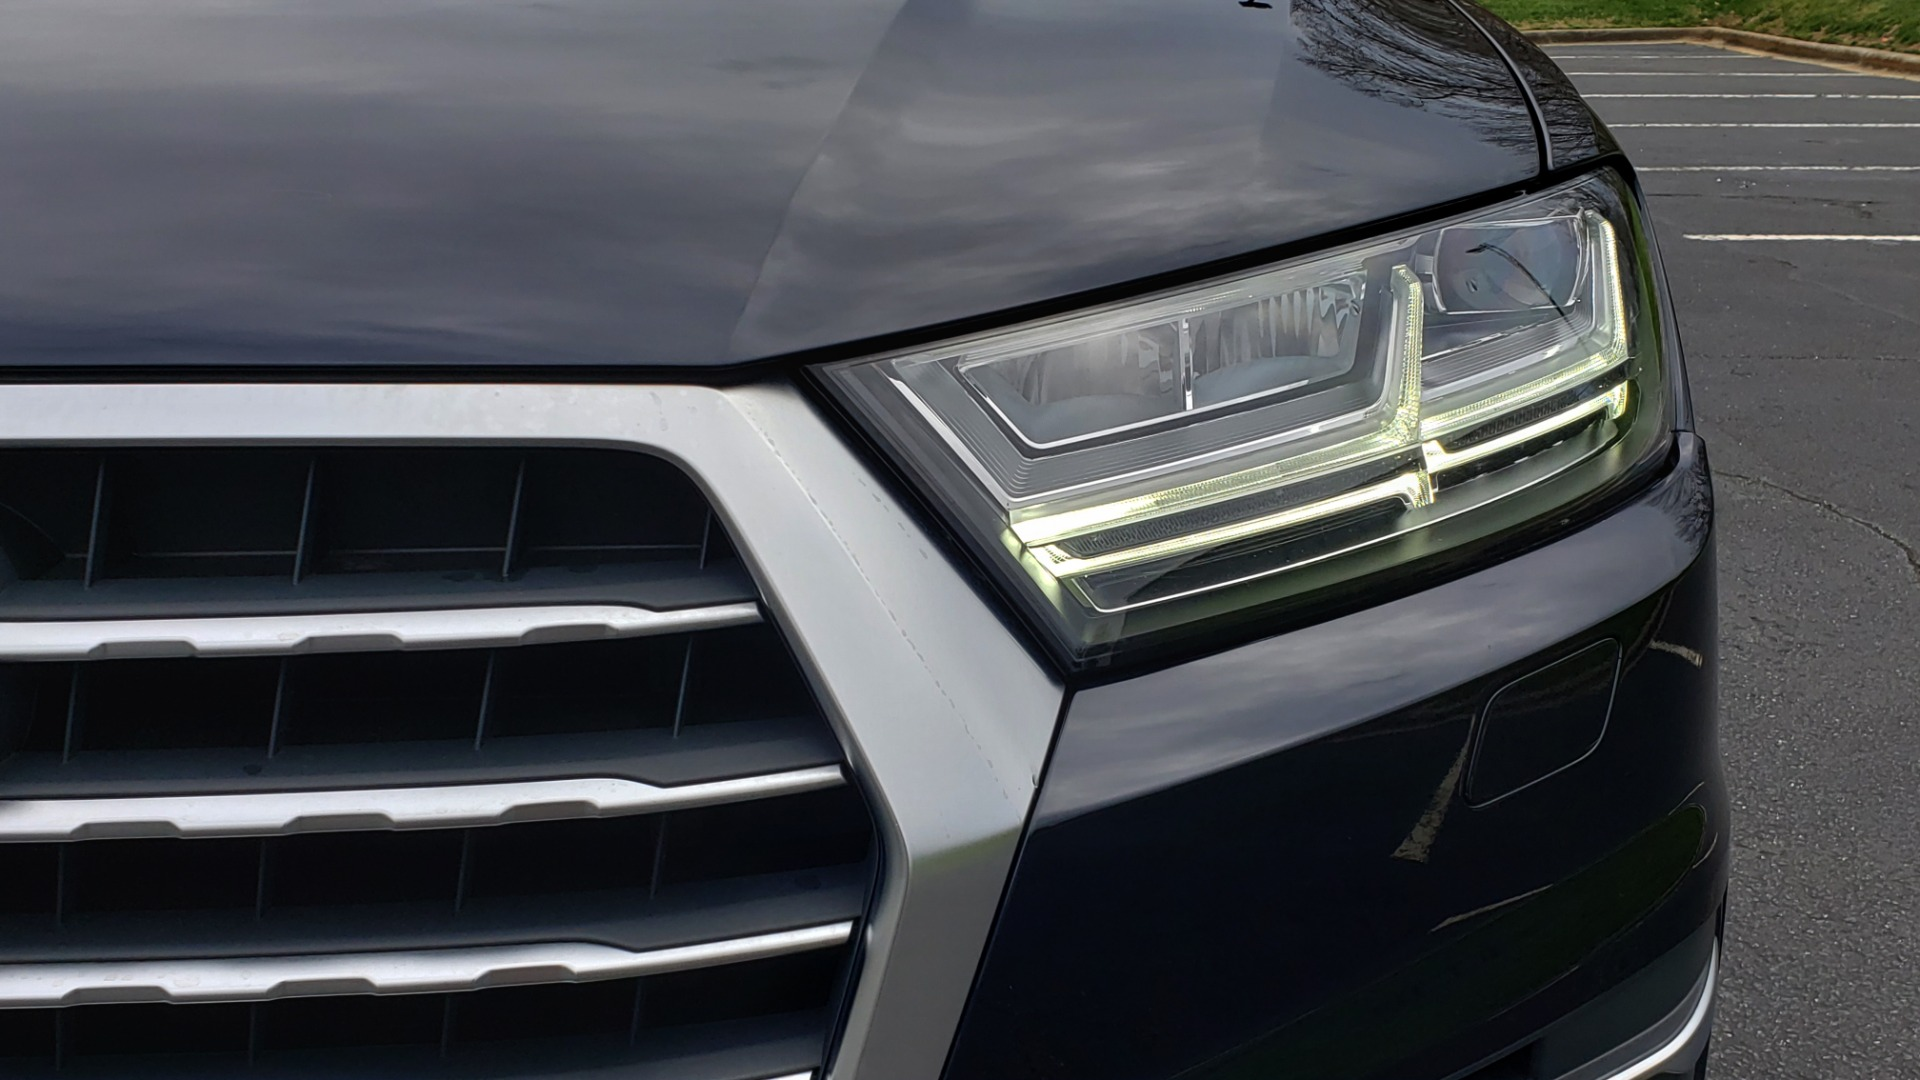 Used 2017 Audi Q7 PRESTIGE 3.0T / AWD / NAV / PANO-ROOF / HTD STS / BOSE / VISION for sale Sold at Formula Imports in Charlotte NC 28227 32